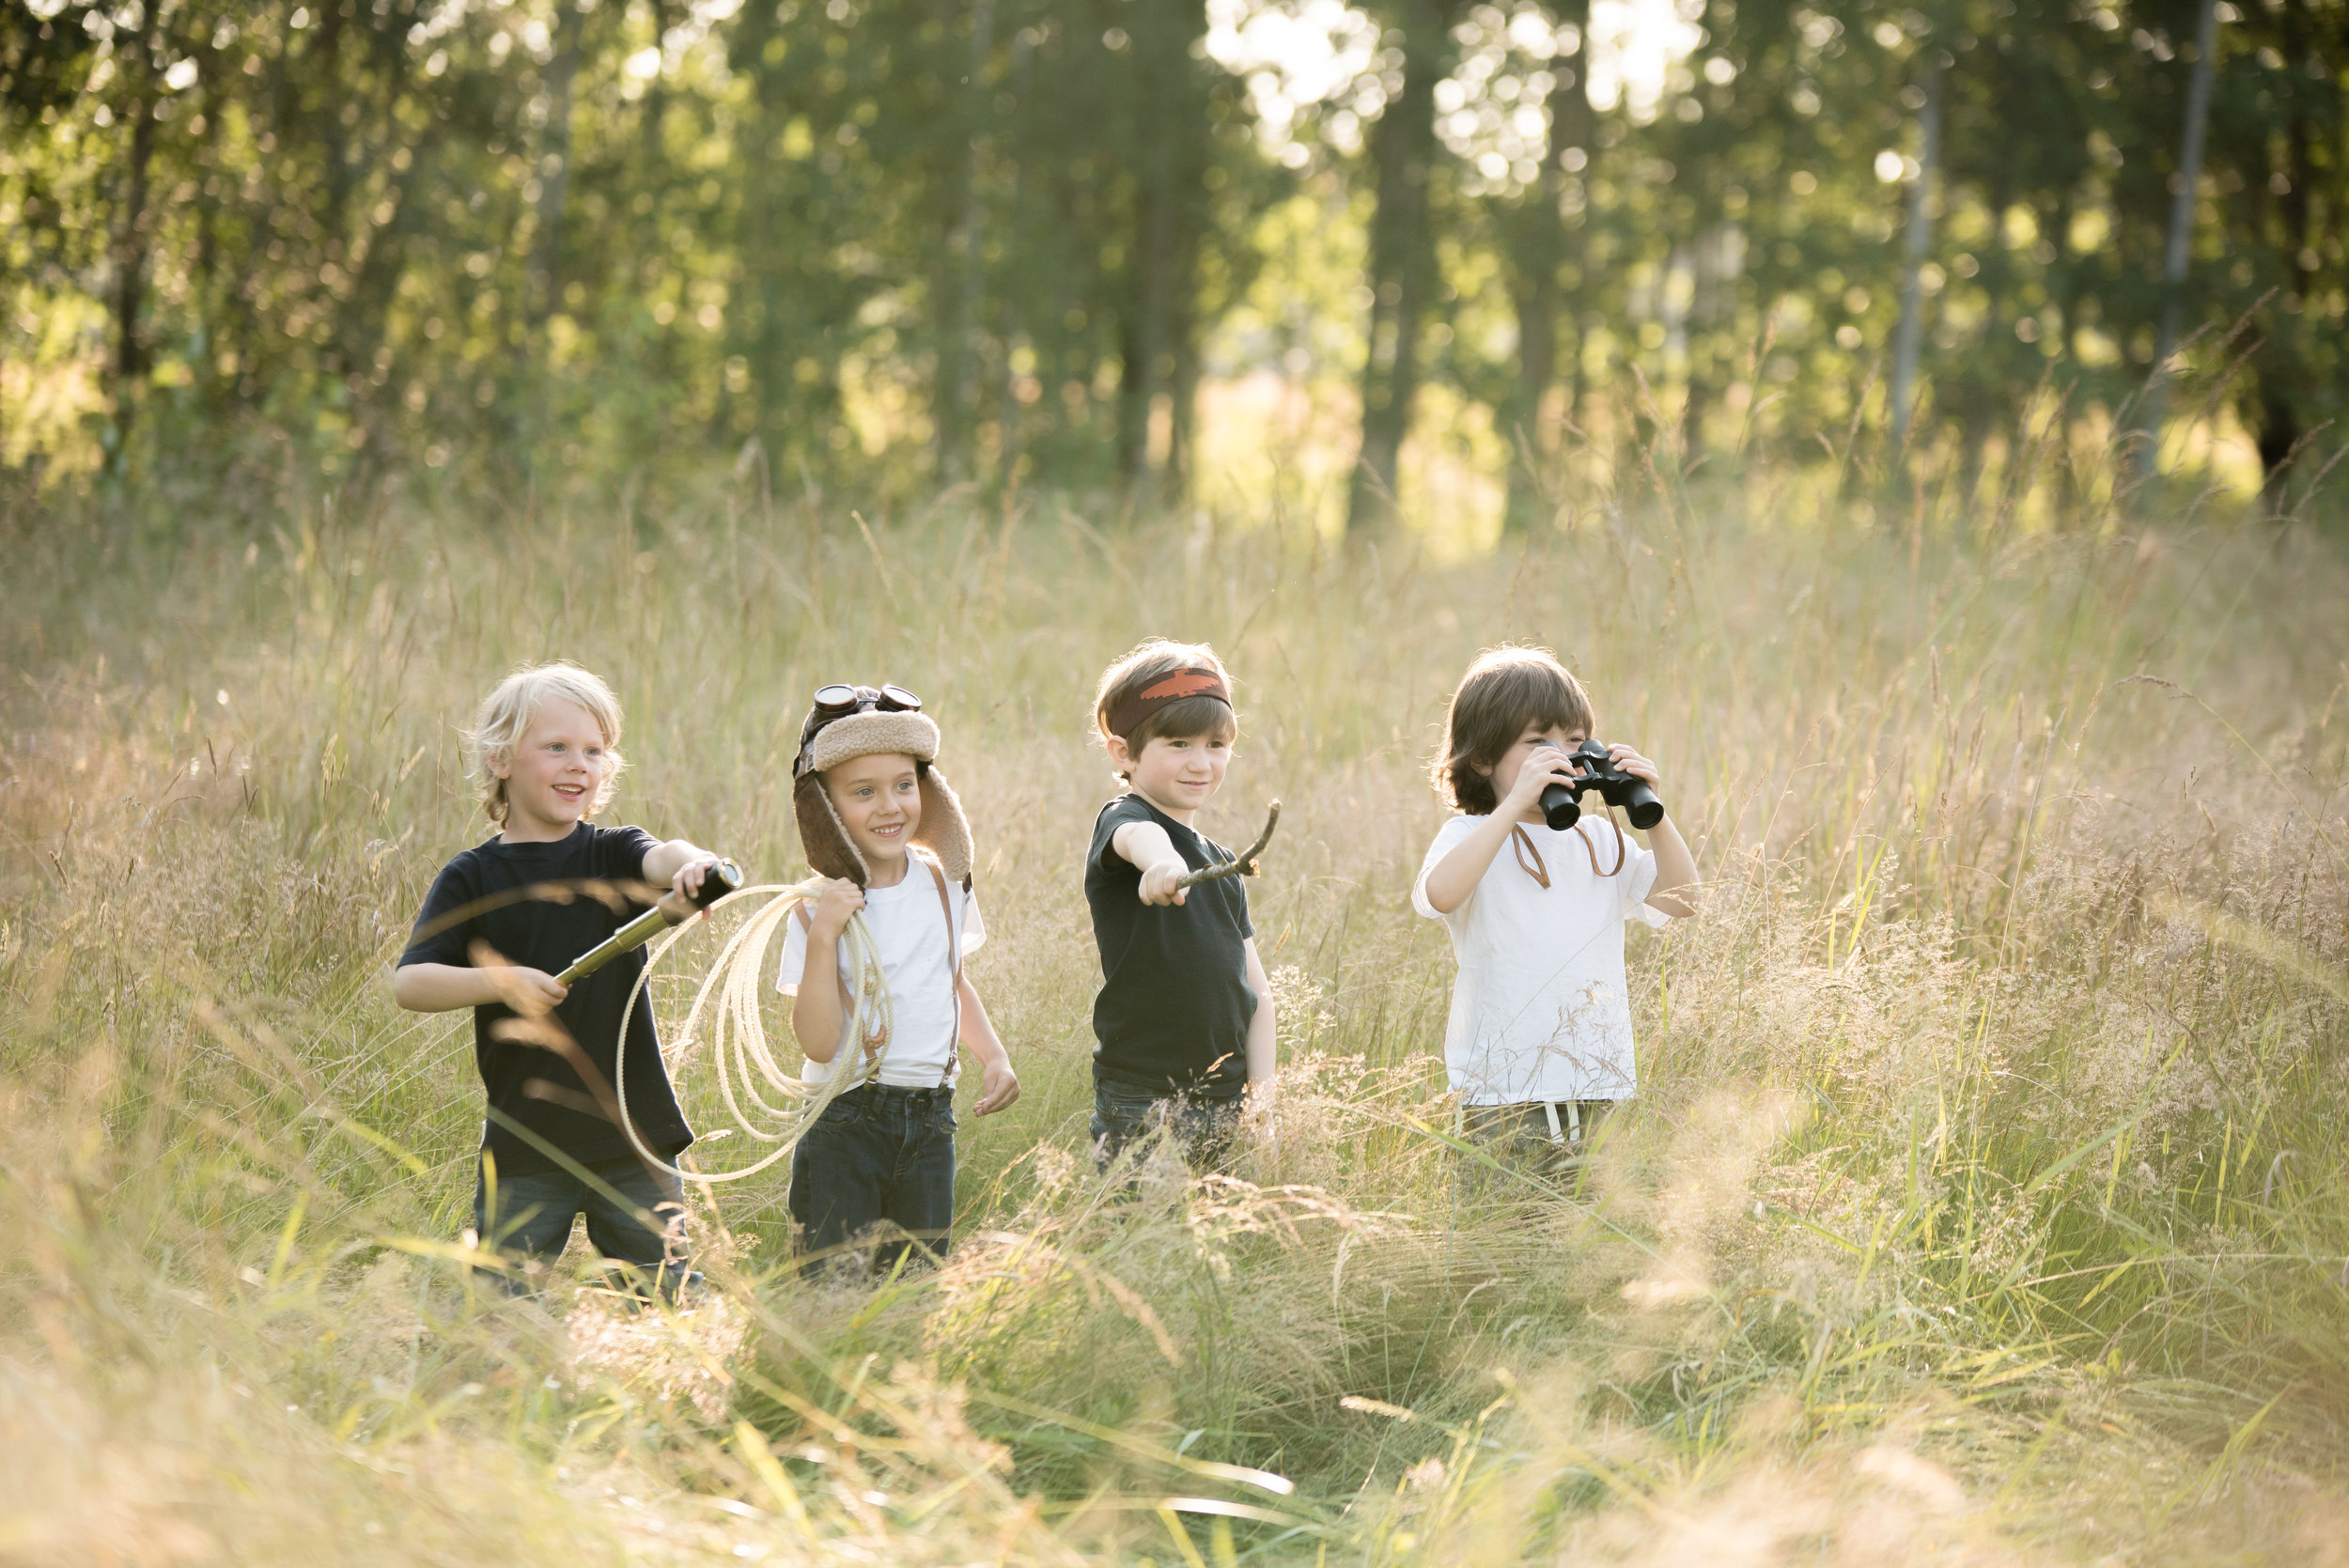 seattle children's photographer top children's photographer children's photography children's portraiture